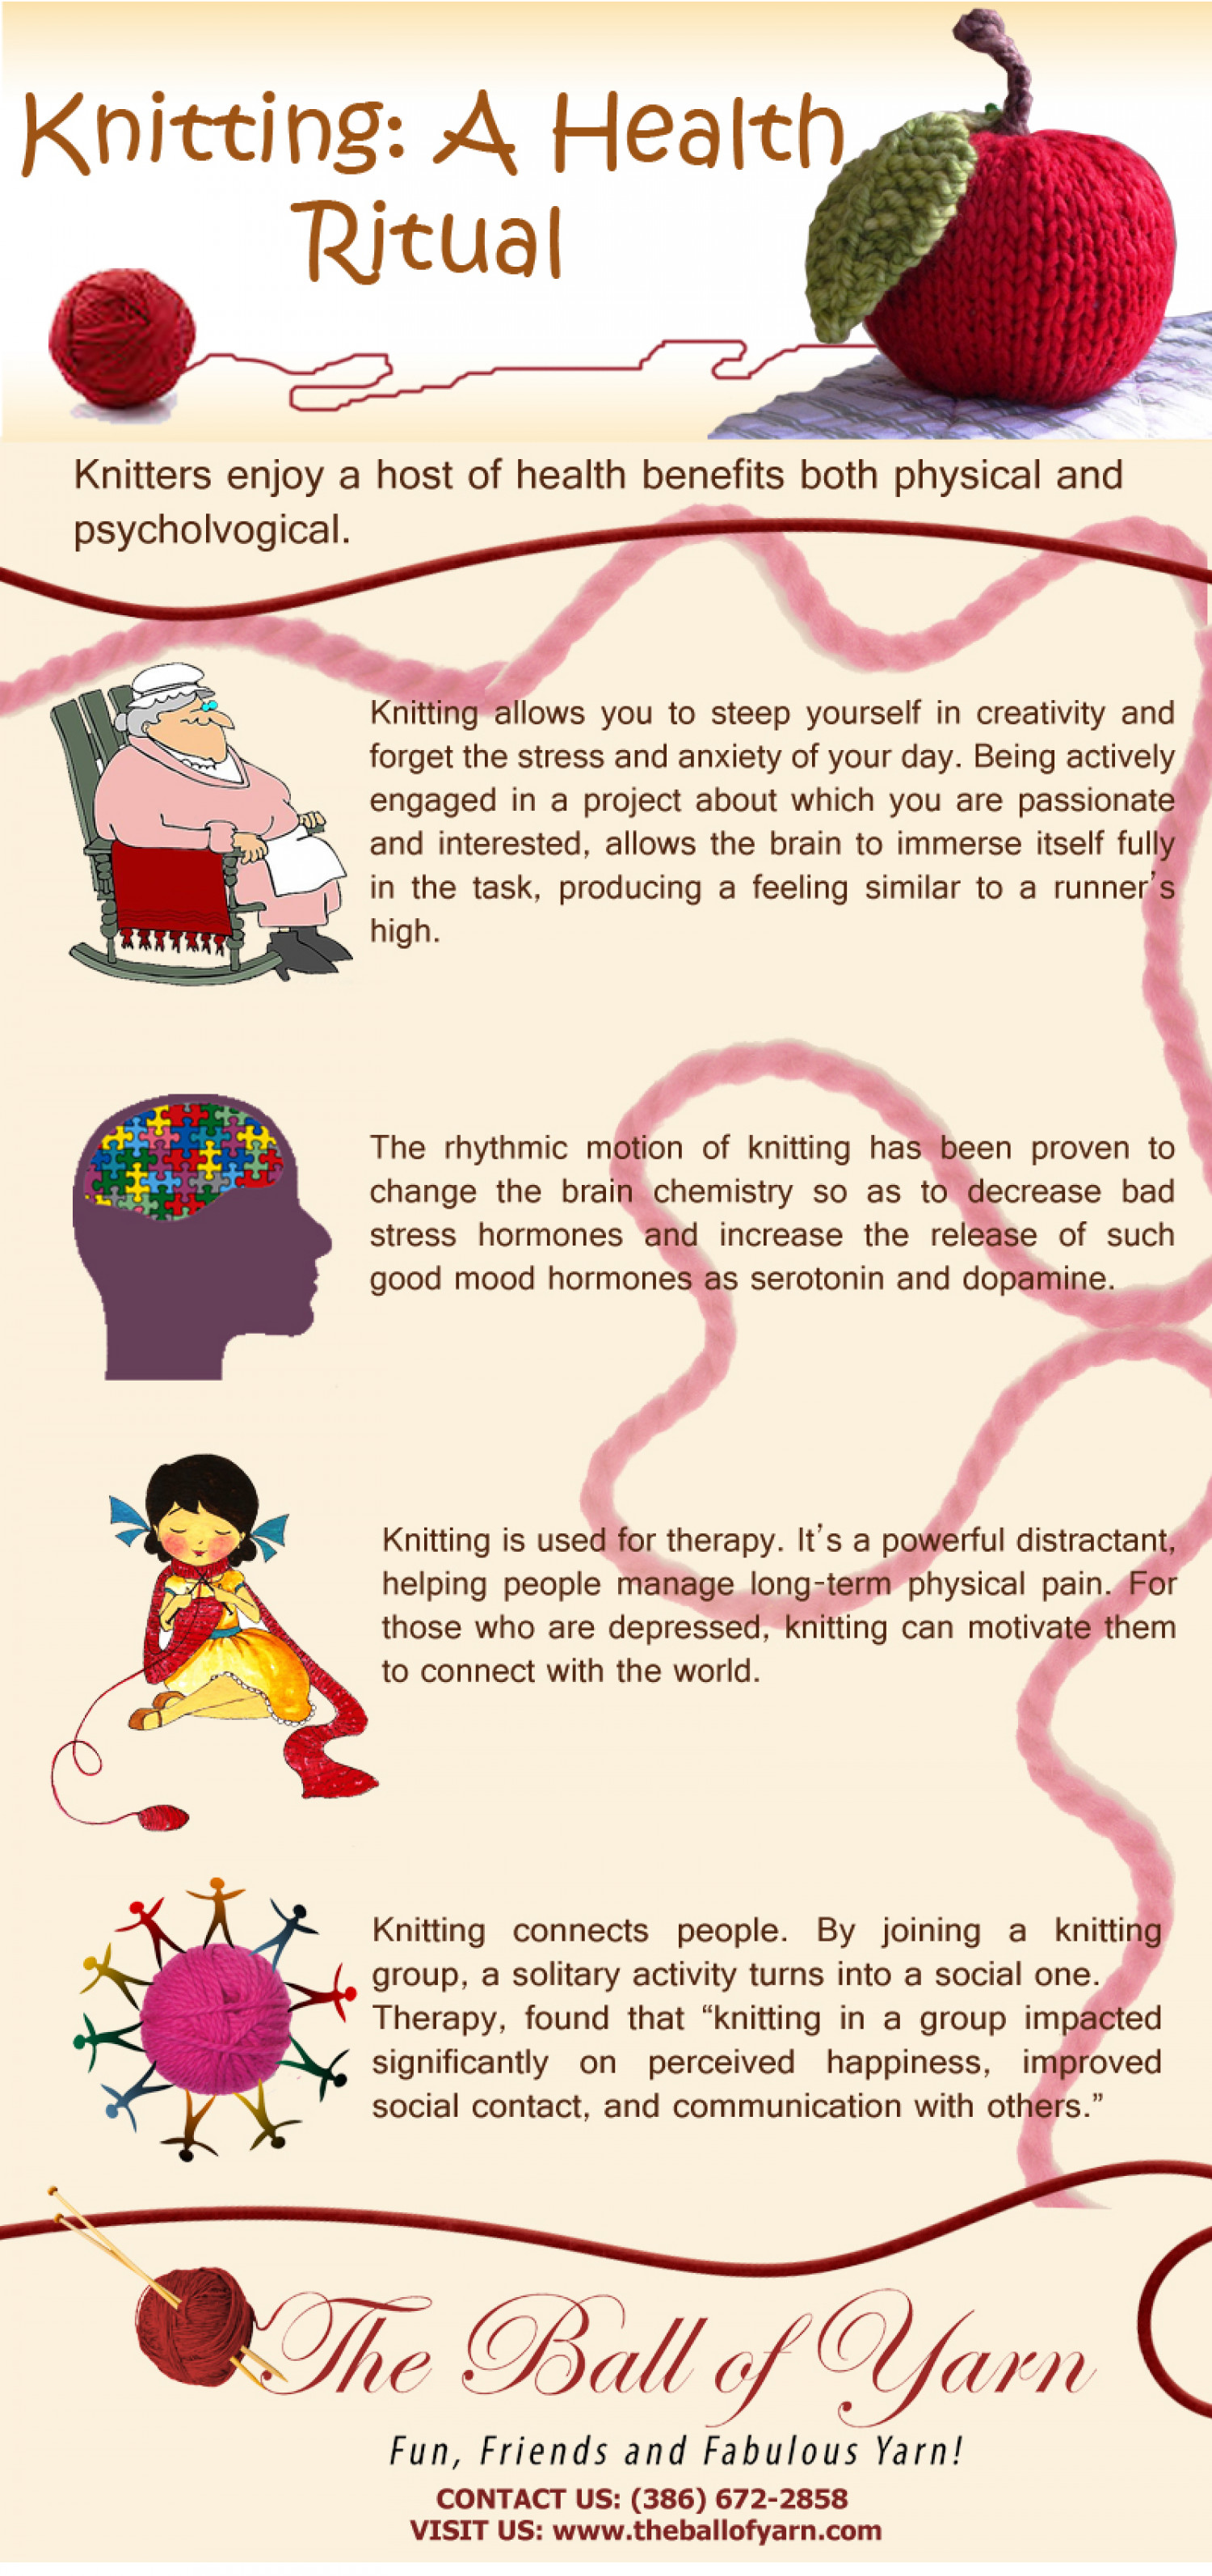 Knitting: A Health Ritual Infographic